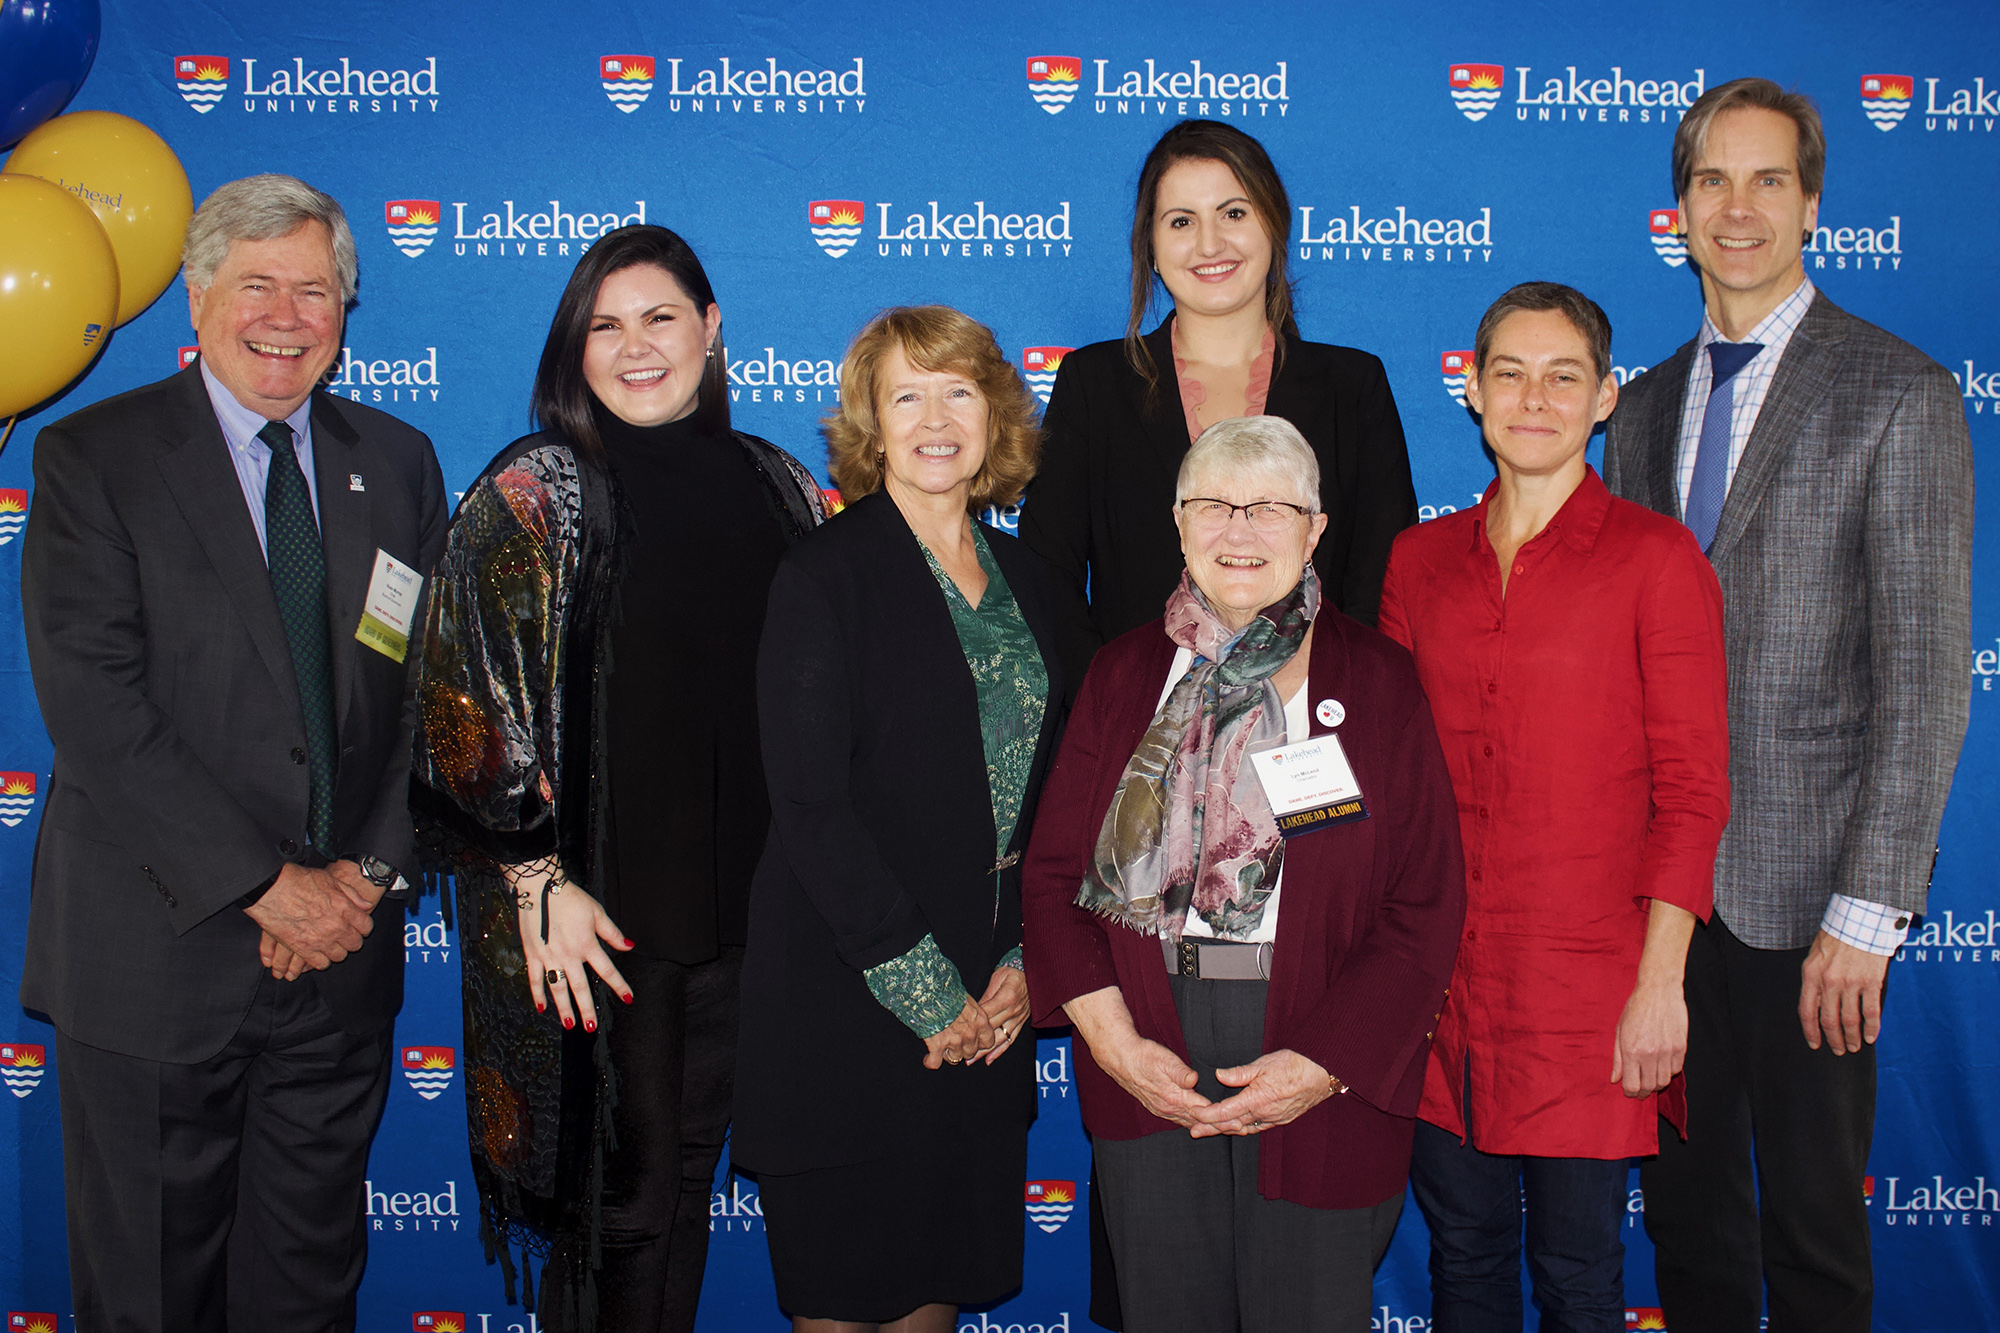 Lakehead Orillia's report to community student, faculty and alumni speakers